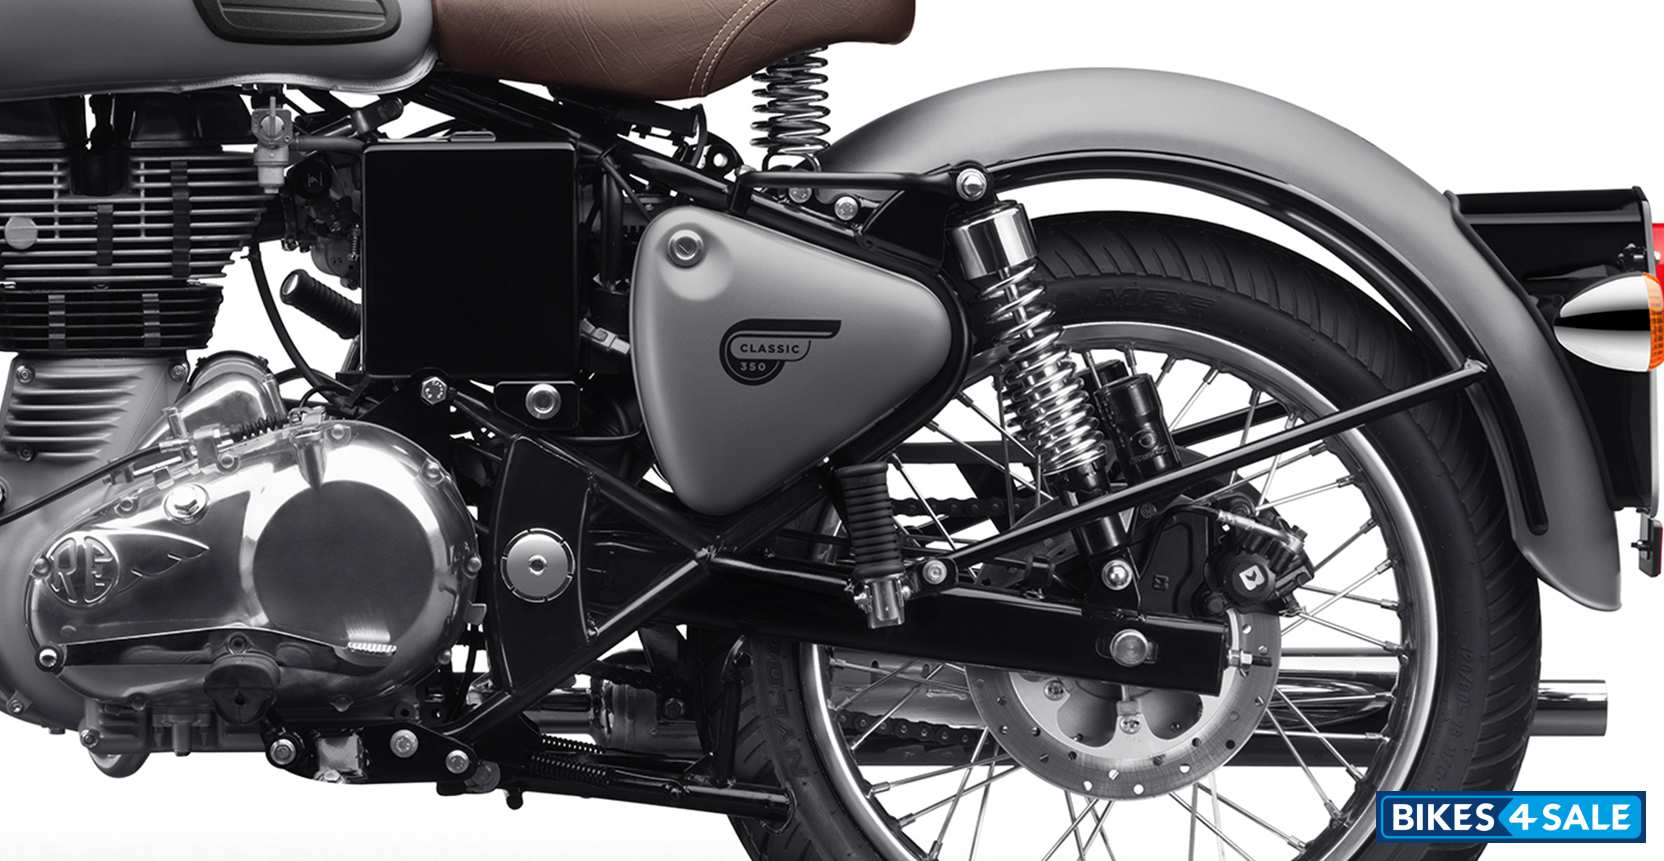 Photo 3 Royal Enfield Classic Gunmetal Grey Motorcycle Picture Gallery Bikes4sale